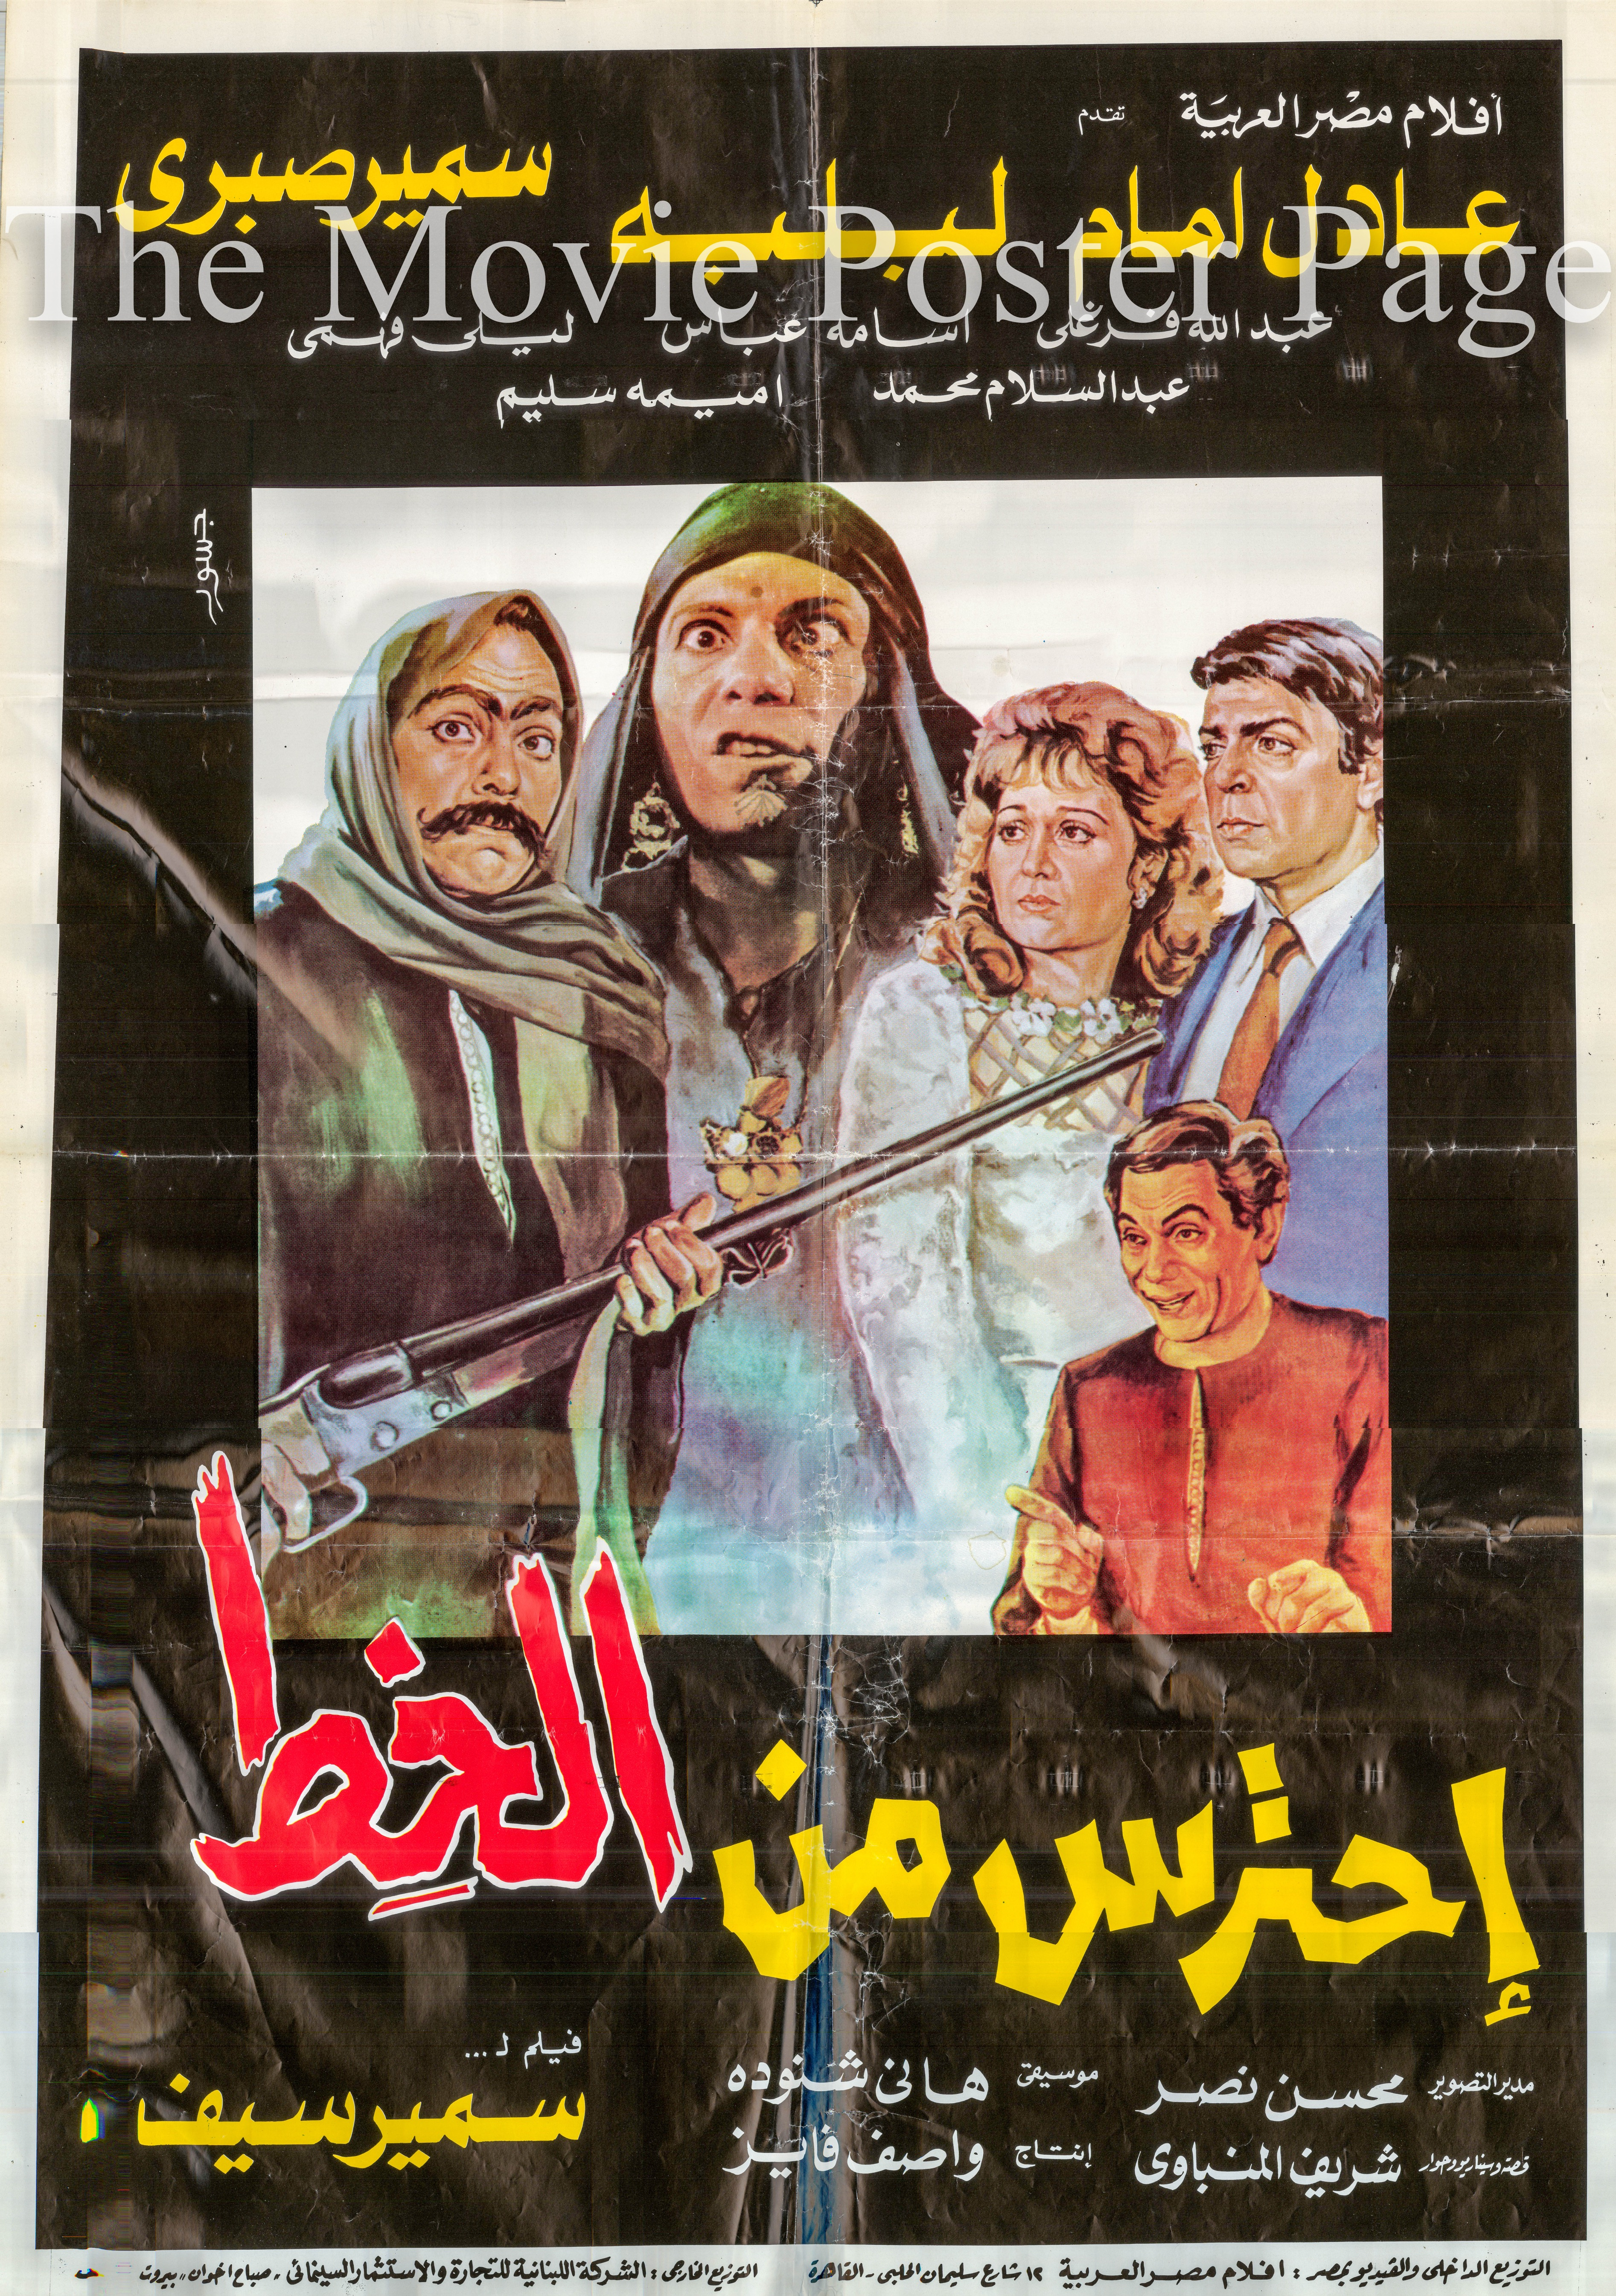 Pictured is an Egyptian promotional poster for the 1984 Samir Seif film Beware of Alkhot starring Adel Imam as Khosusi/Alkhot.